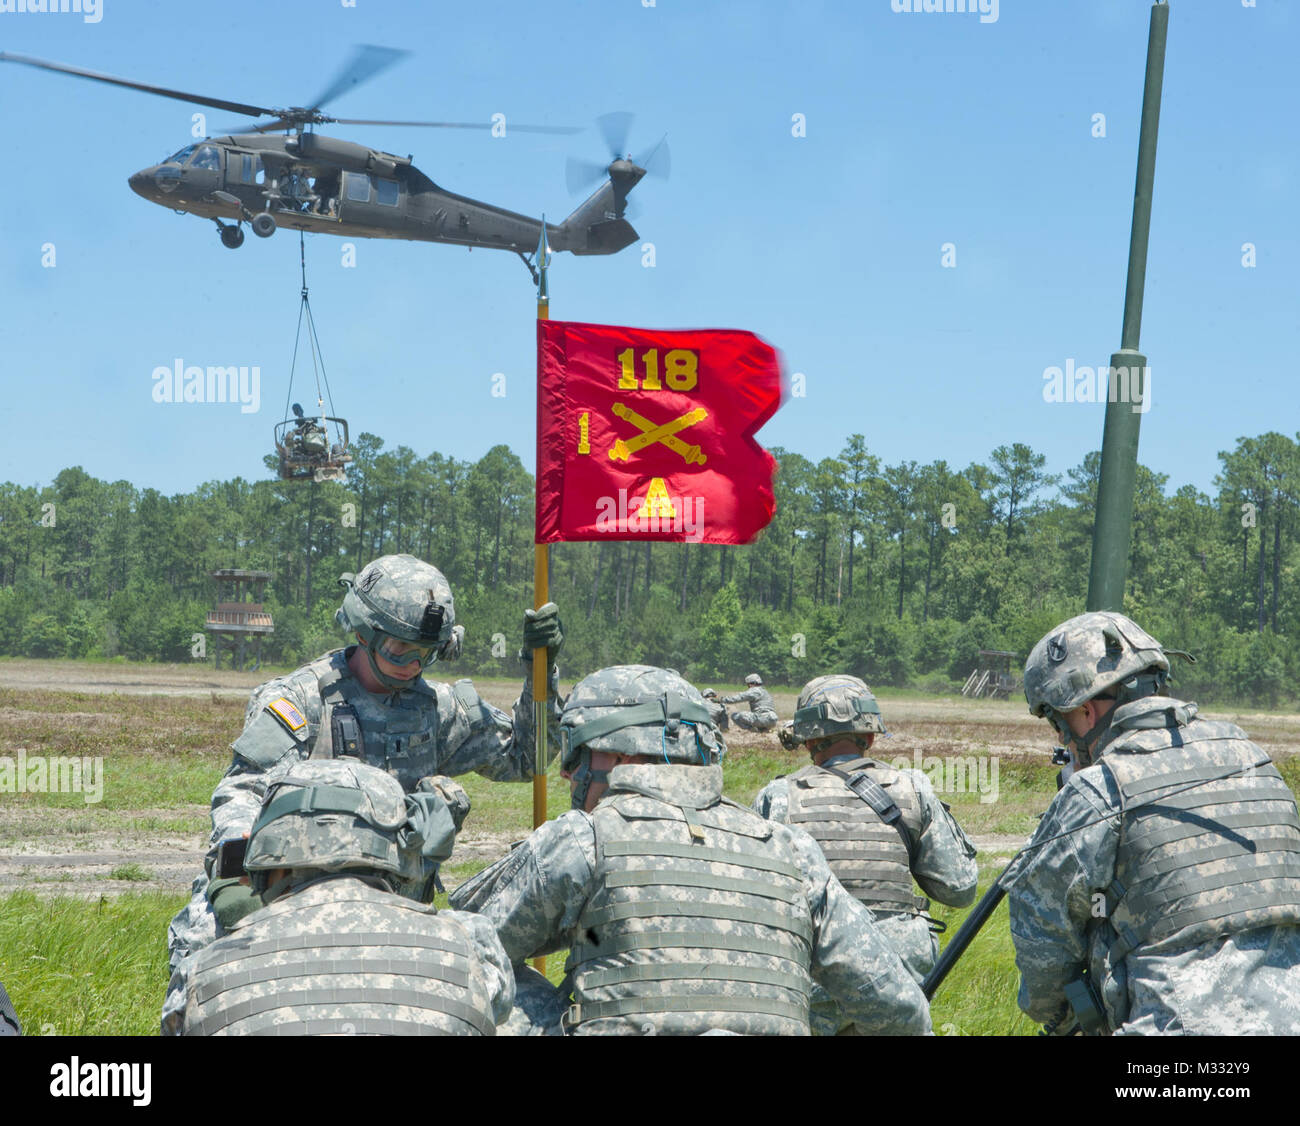 """History is booming for the Georgia Army National Guard, literally! The Savannah-based """"Hickory's Howitzers"""" 1st Battalion, 118th Field Artillery Regiment and the 1st Battalion, 185th Aviation Regiment teamed to conduct the first air mobile raid in Georgia Guard history at Fort Stewart.  With the """"Way Forward"""" being a ready, expedient and mobile force element, the """"drop and pop"""" maneuvers were an integral part of the 118th Field Artillery's annual training.  Joining with aviation elements made the training experience a little less mundane. """"It's very exciting training,"""" Spc. Joshua Holz, a Sava Stock Photo"""